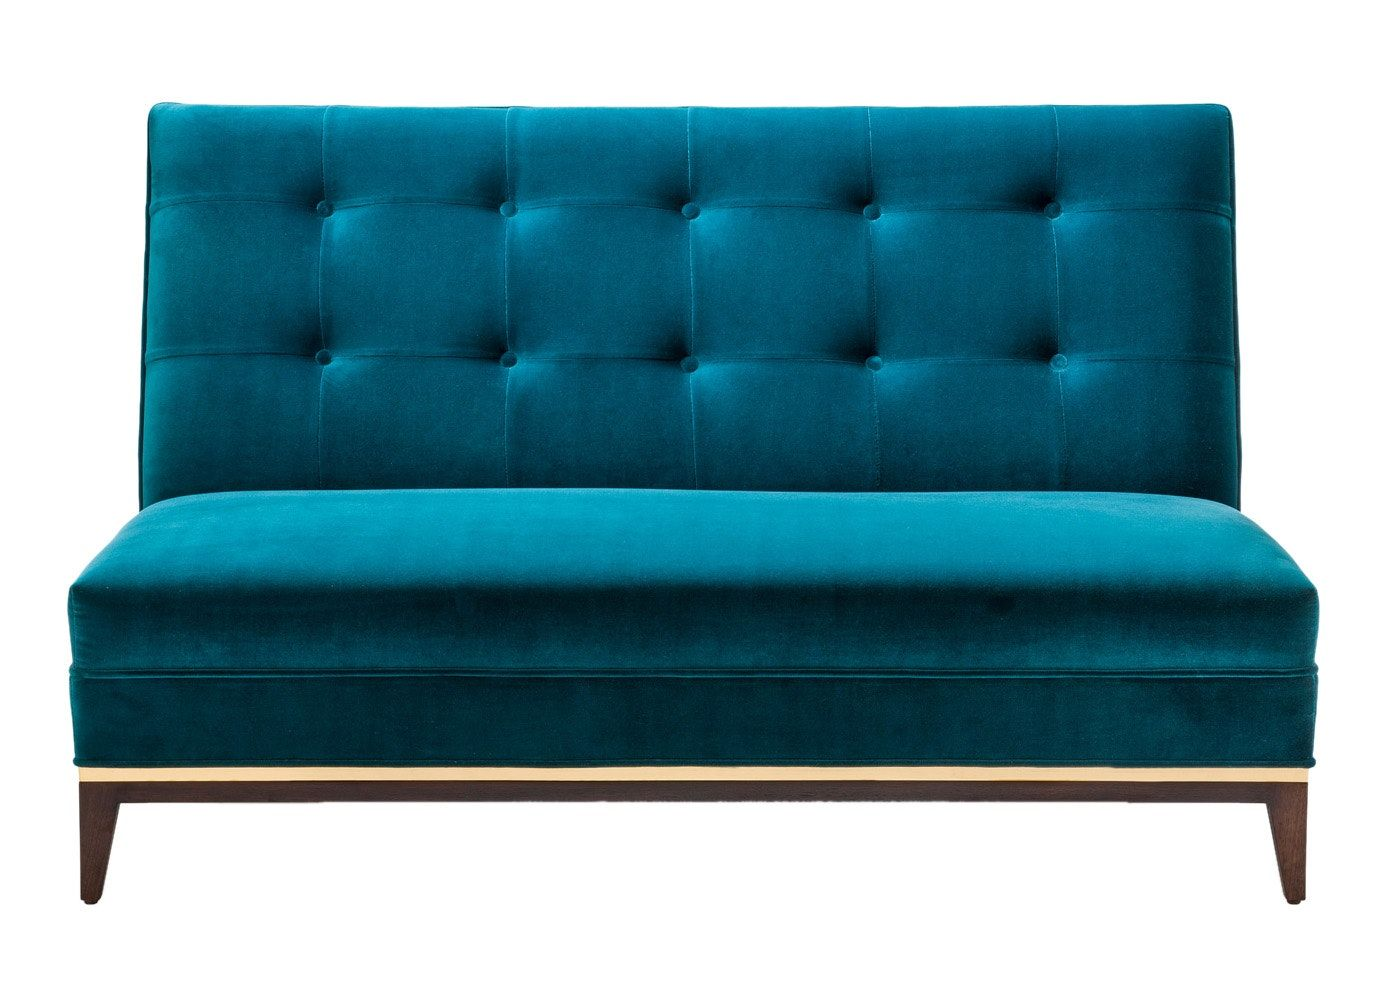 Buy Maven Two Seat Sofa By Amy Somerville   London   Made To Order